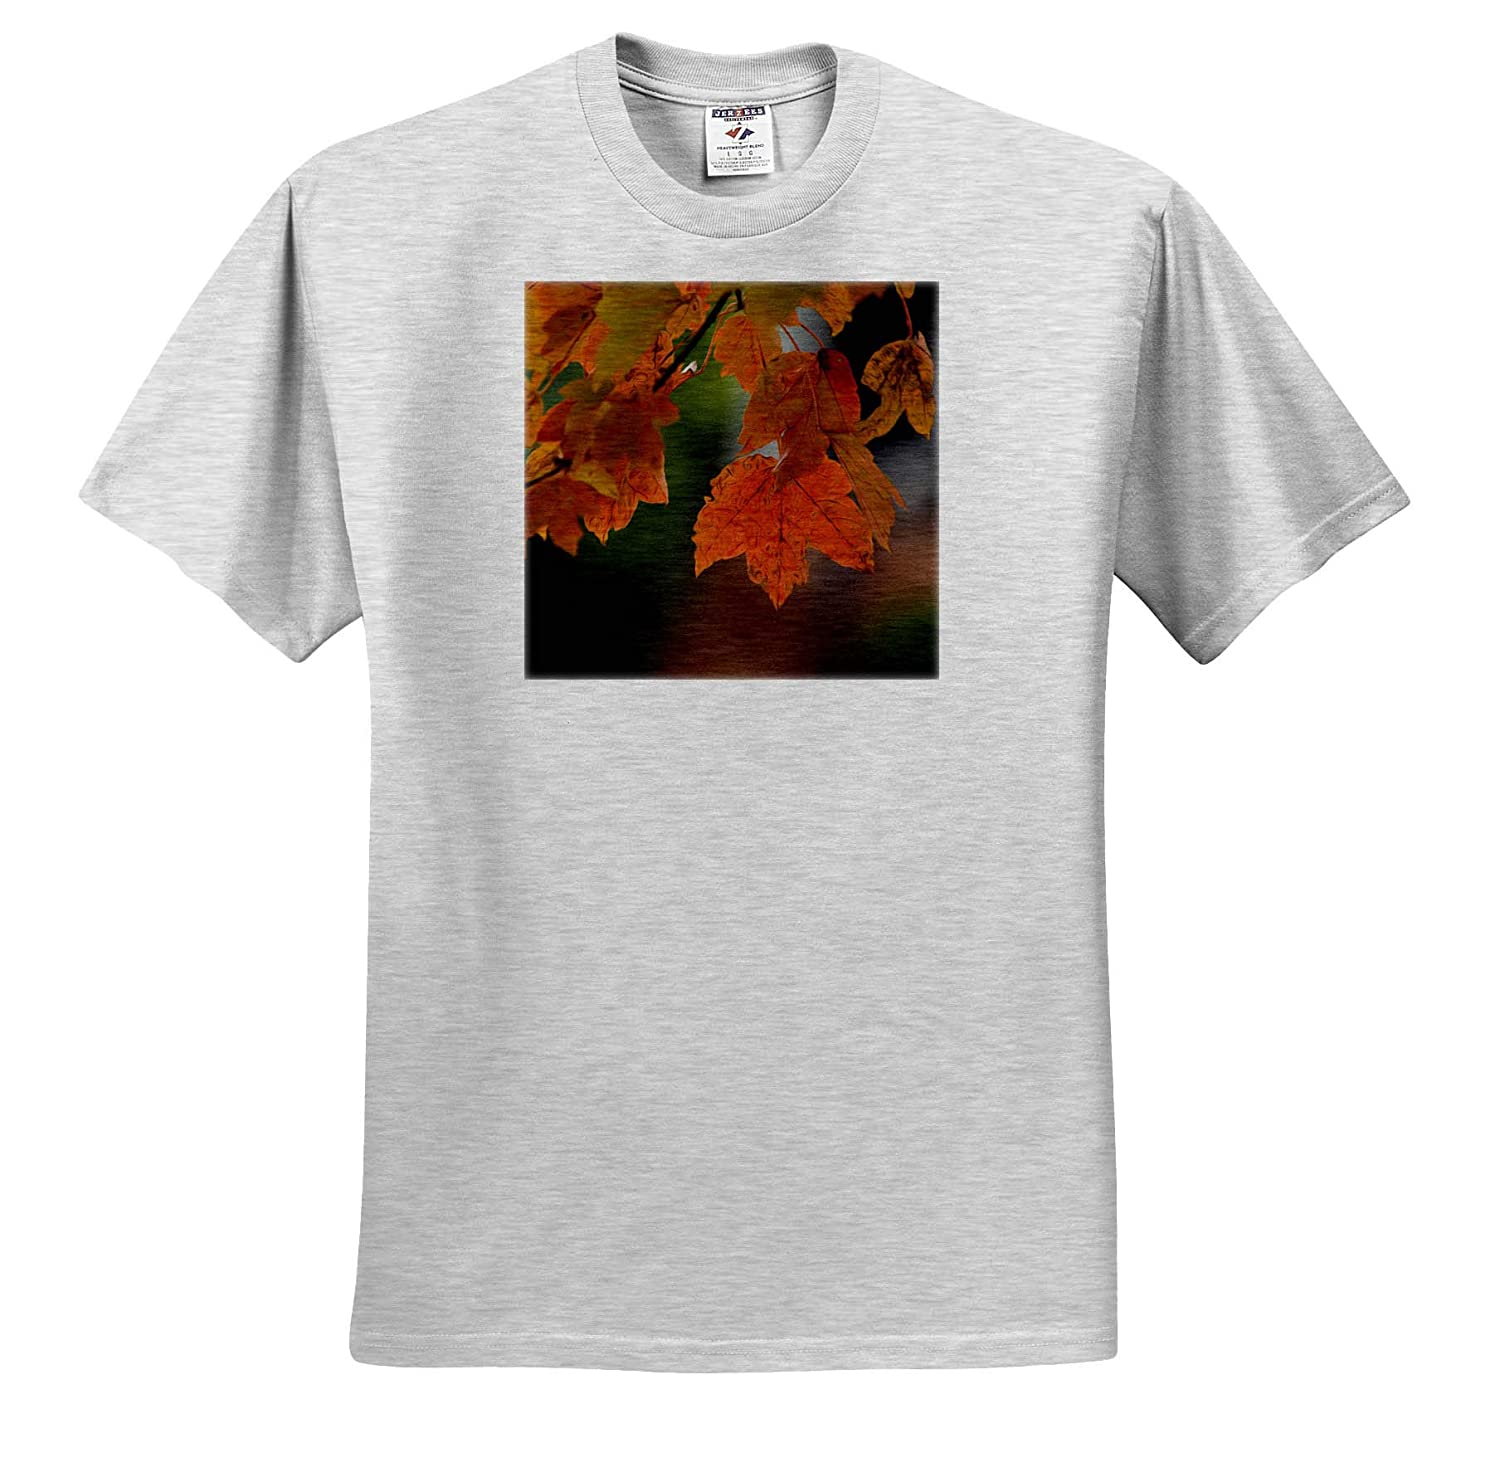 3dRose Stamp City Photograph of Autumn Maple Leaves Stylized in an Oil Paint Effect Nature - T-Shirts